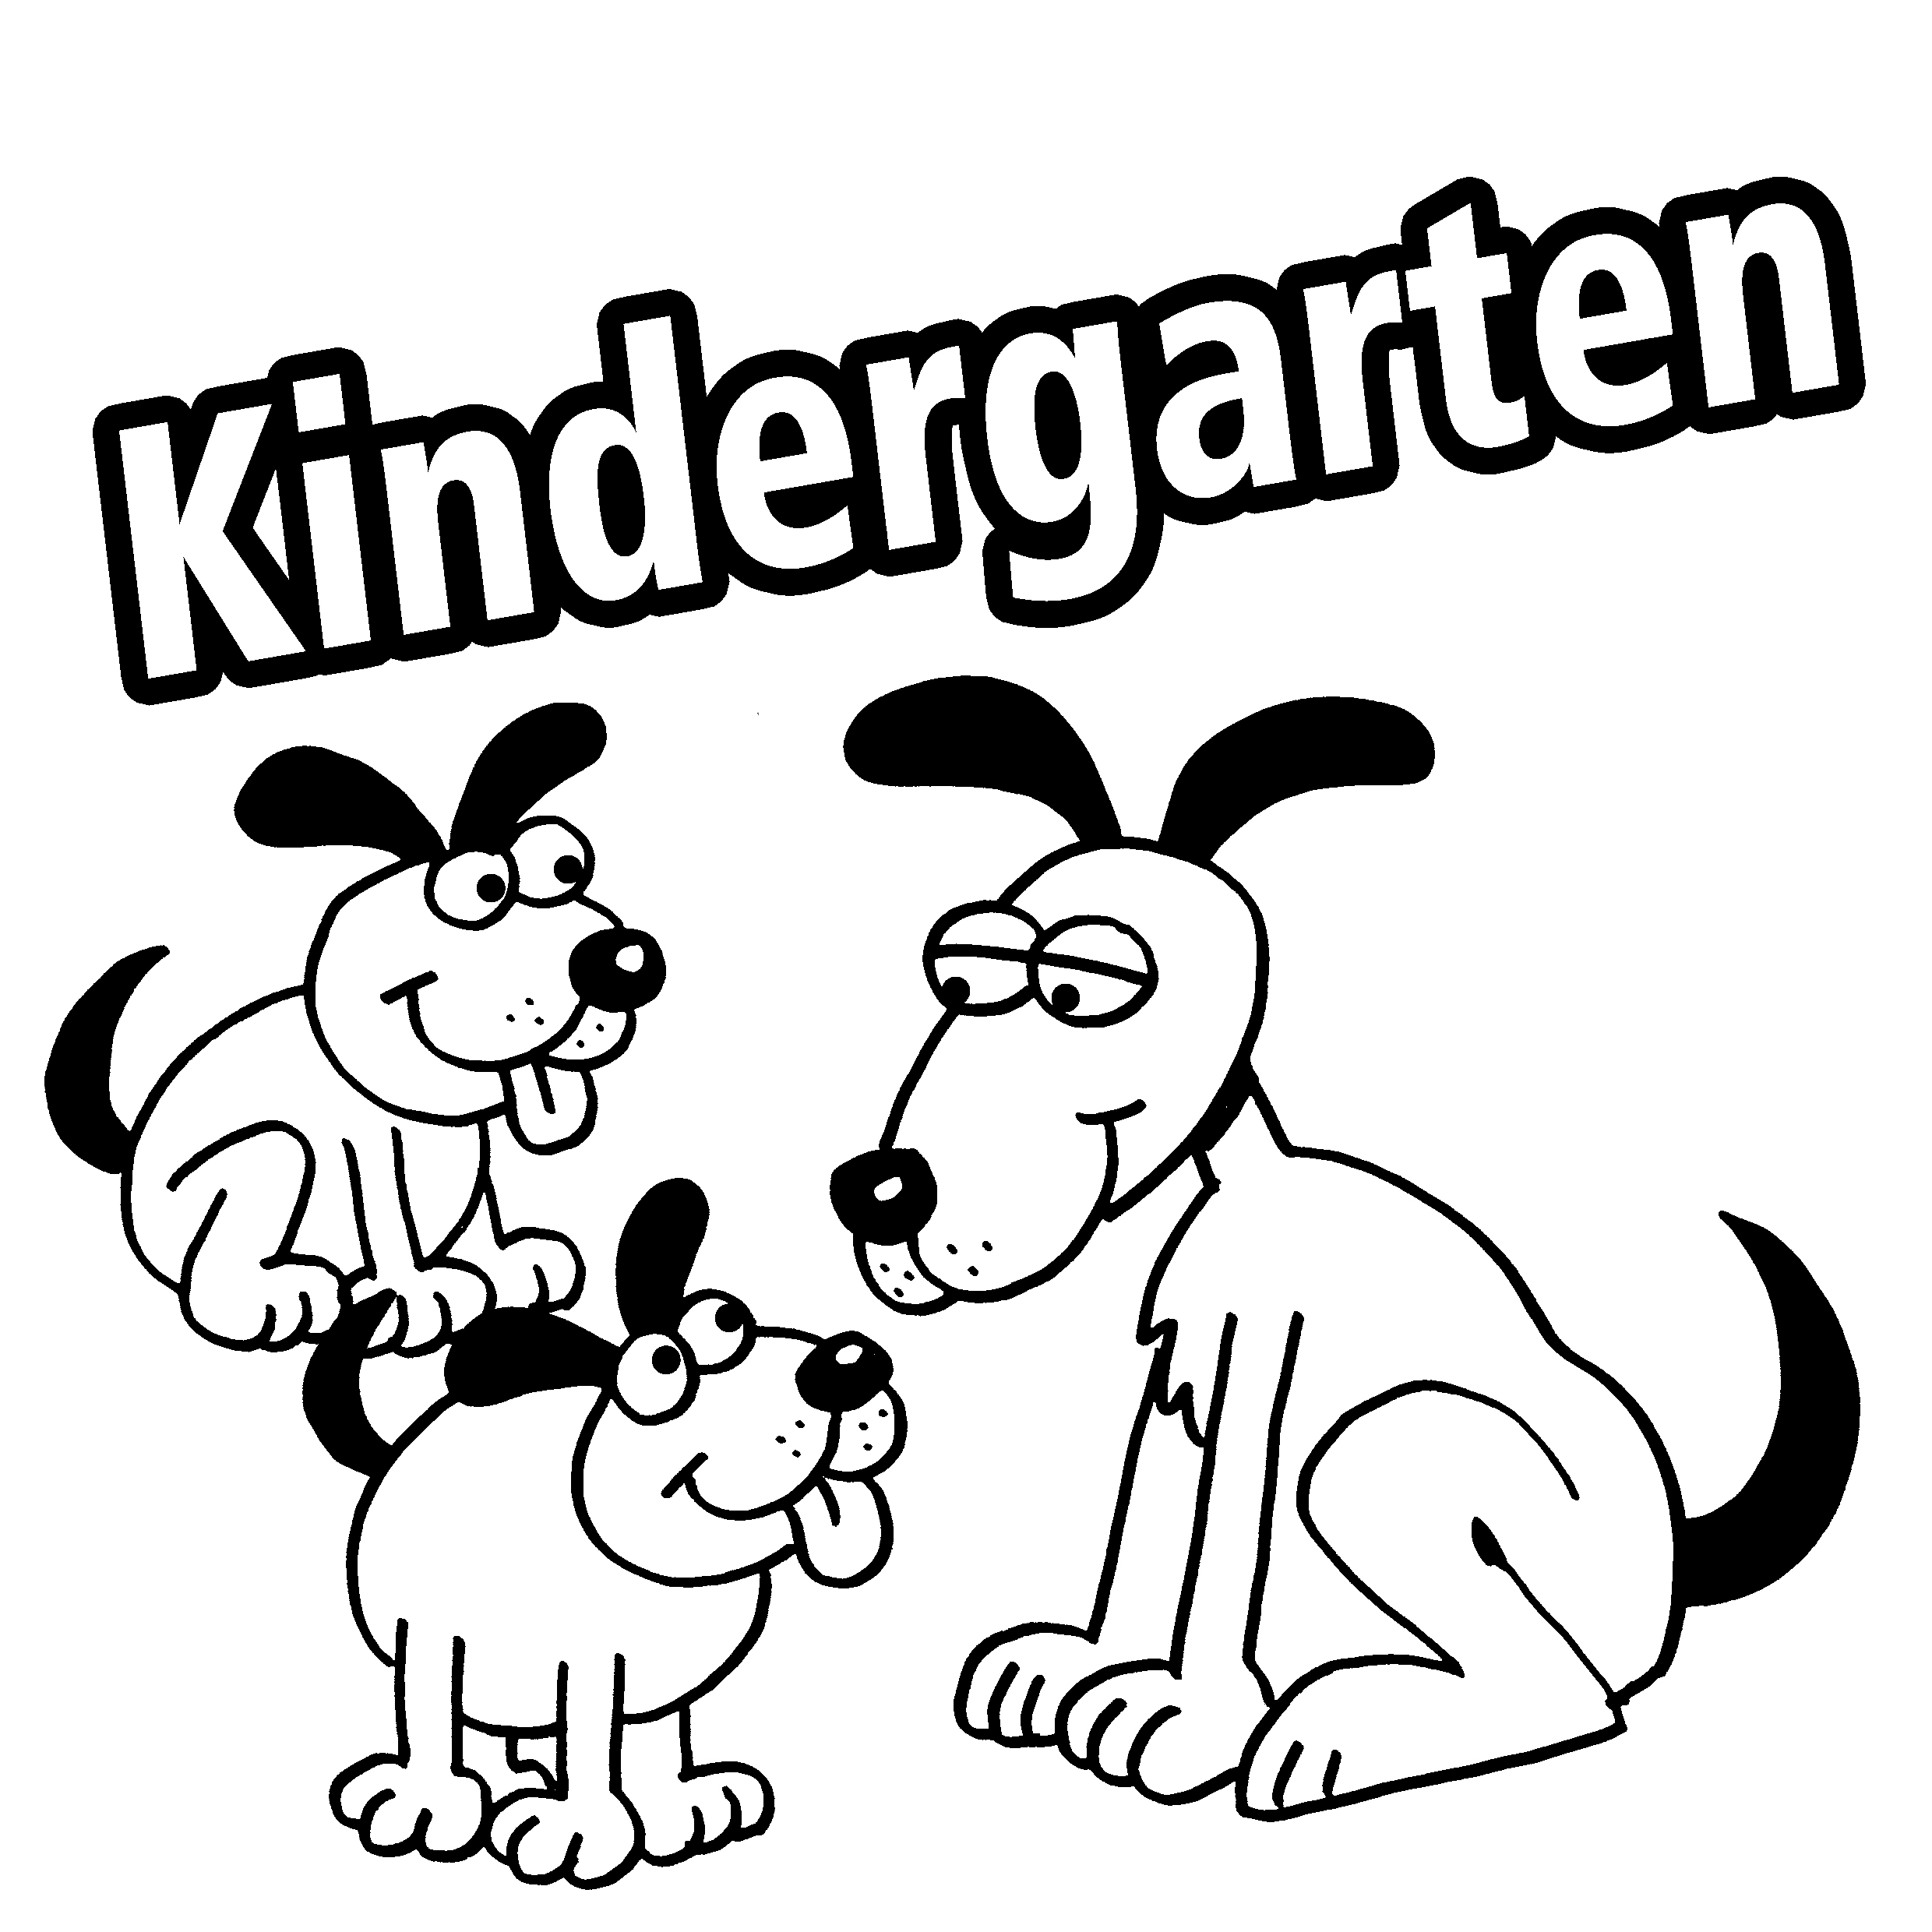 Images For Black And White Elementary School Clipart.